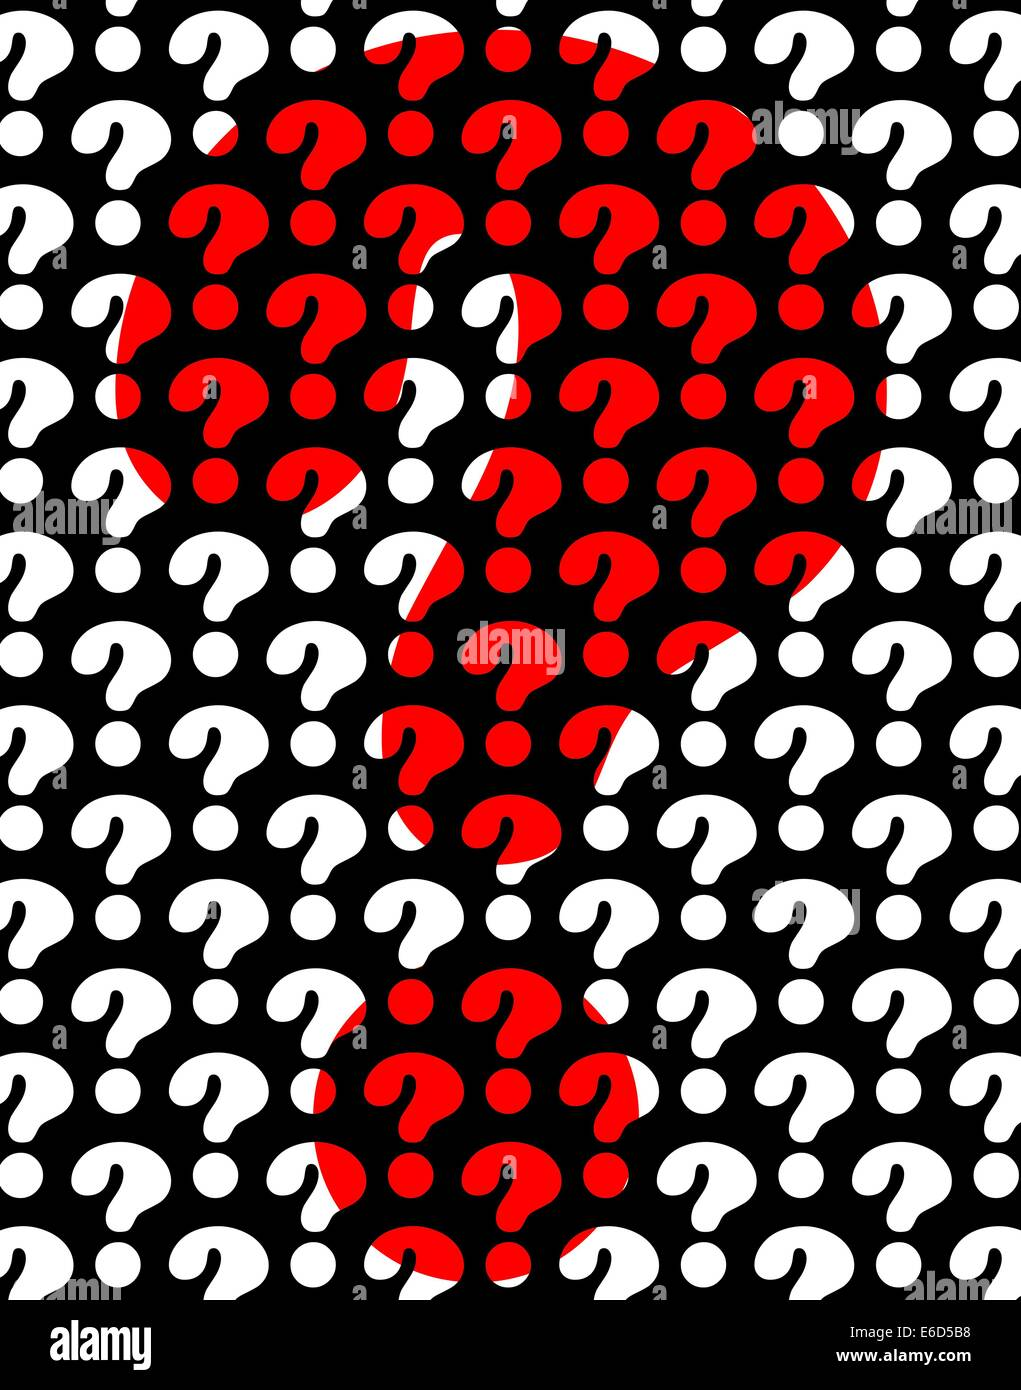 Background editable vector design of question marks - Stock Image